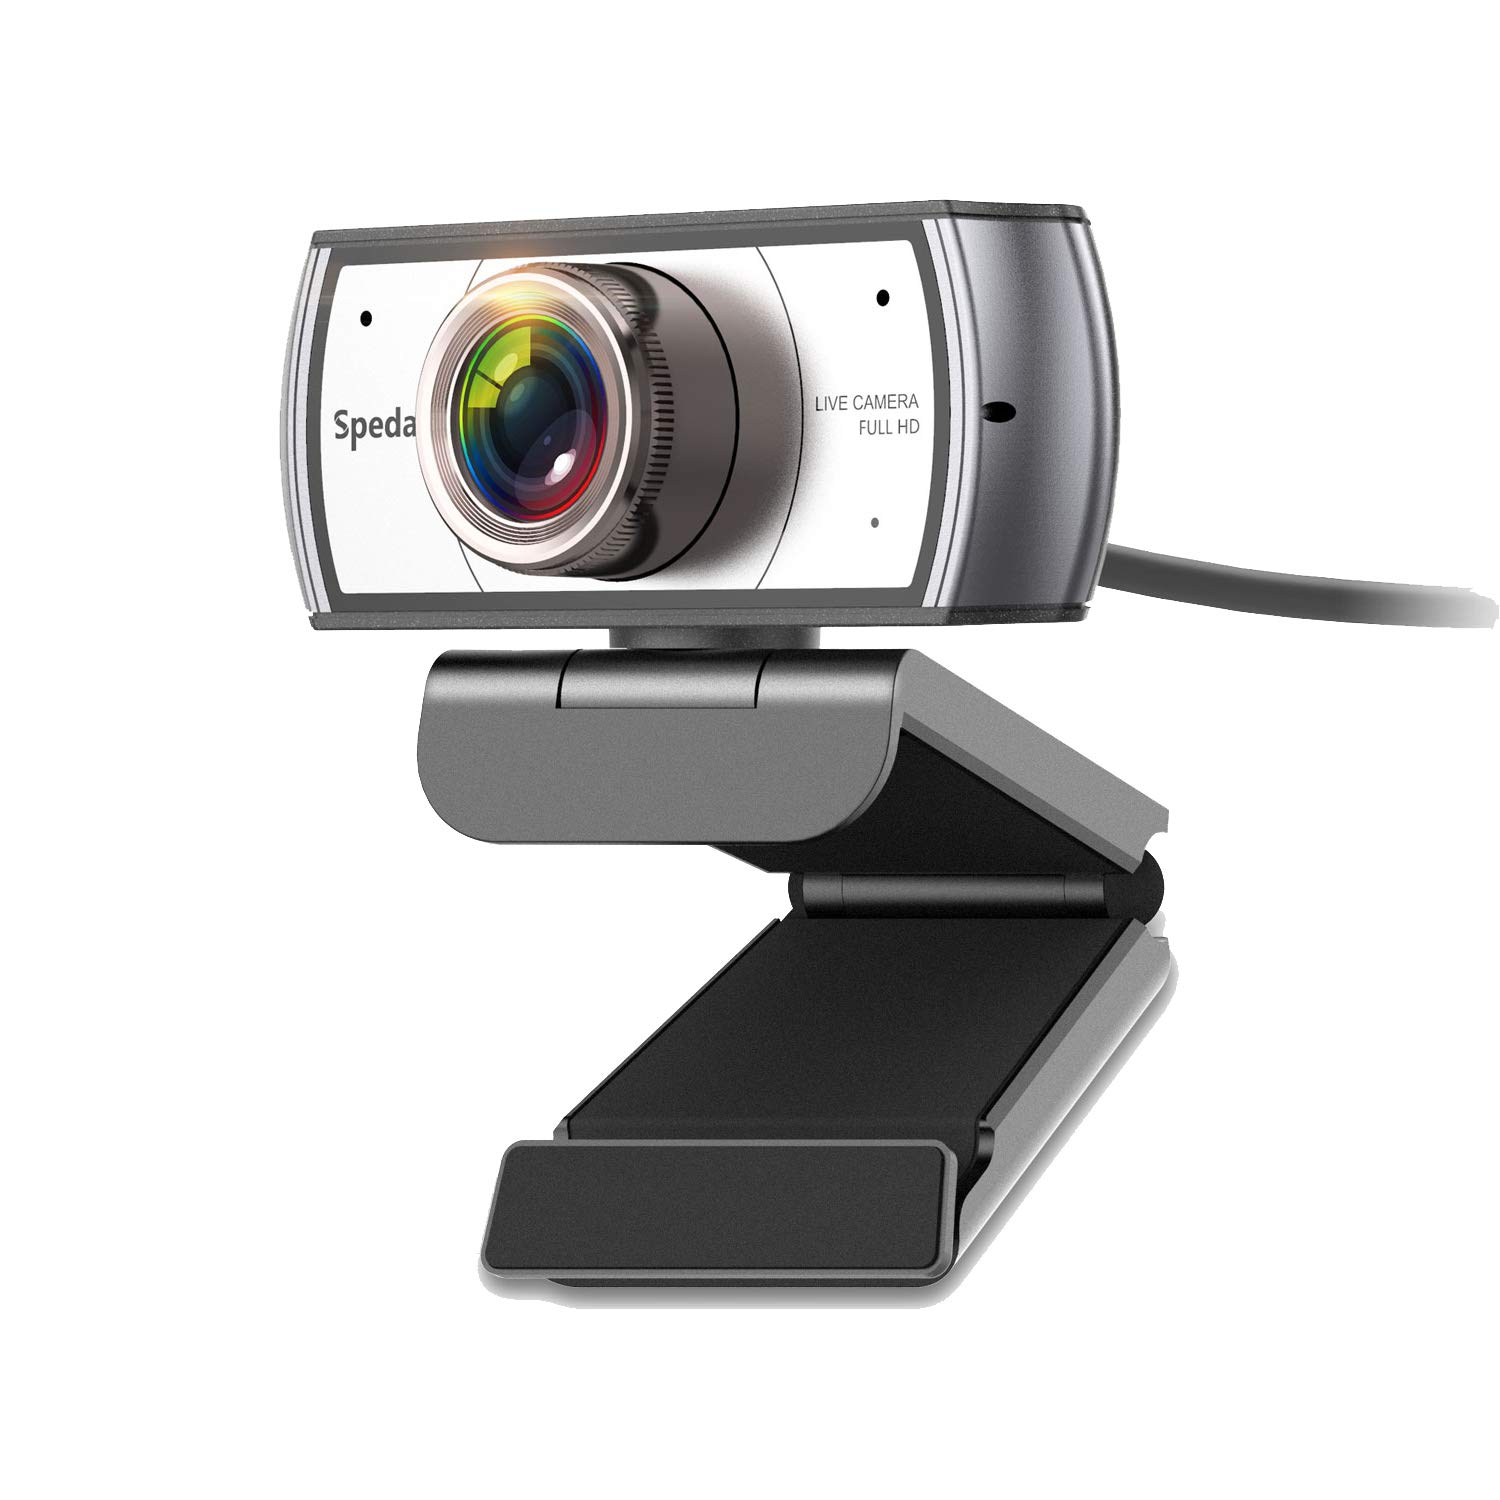 Wide Angle Webcam120 Degree View Spedal 920 Pro Video Conference Distance Learning Remote Teaching